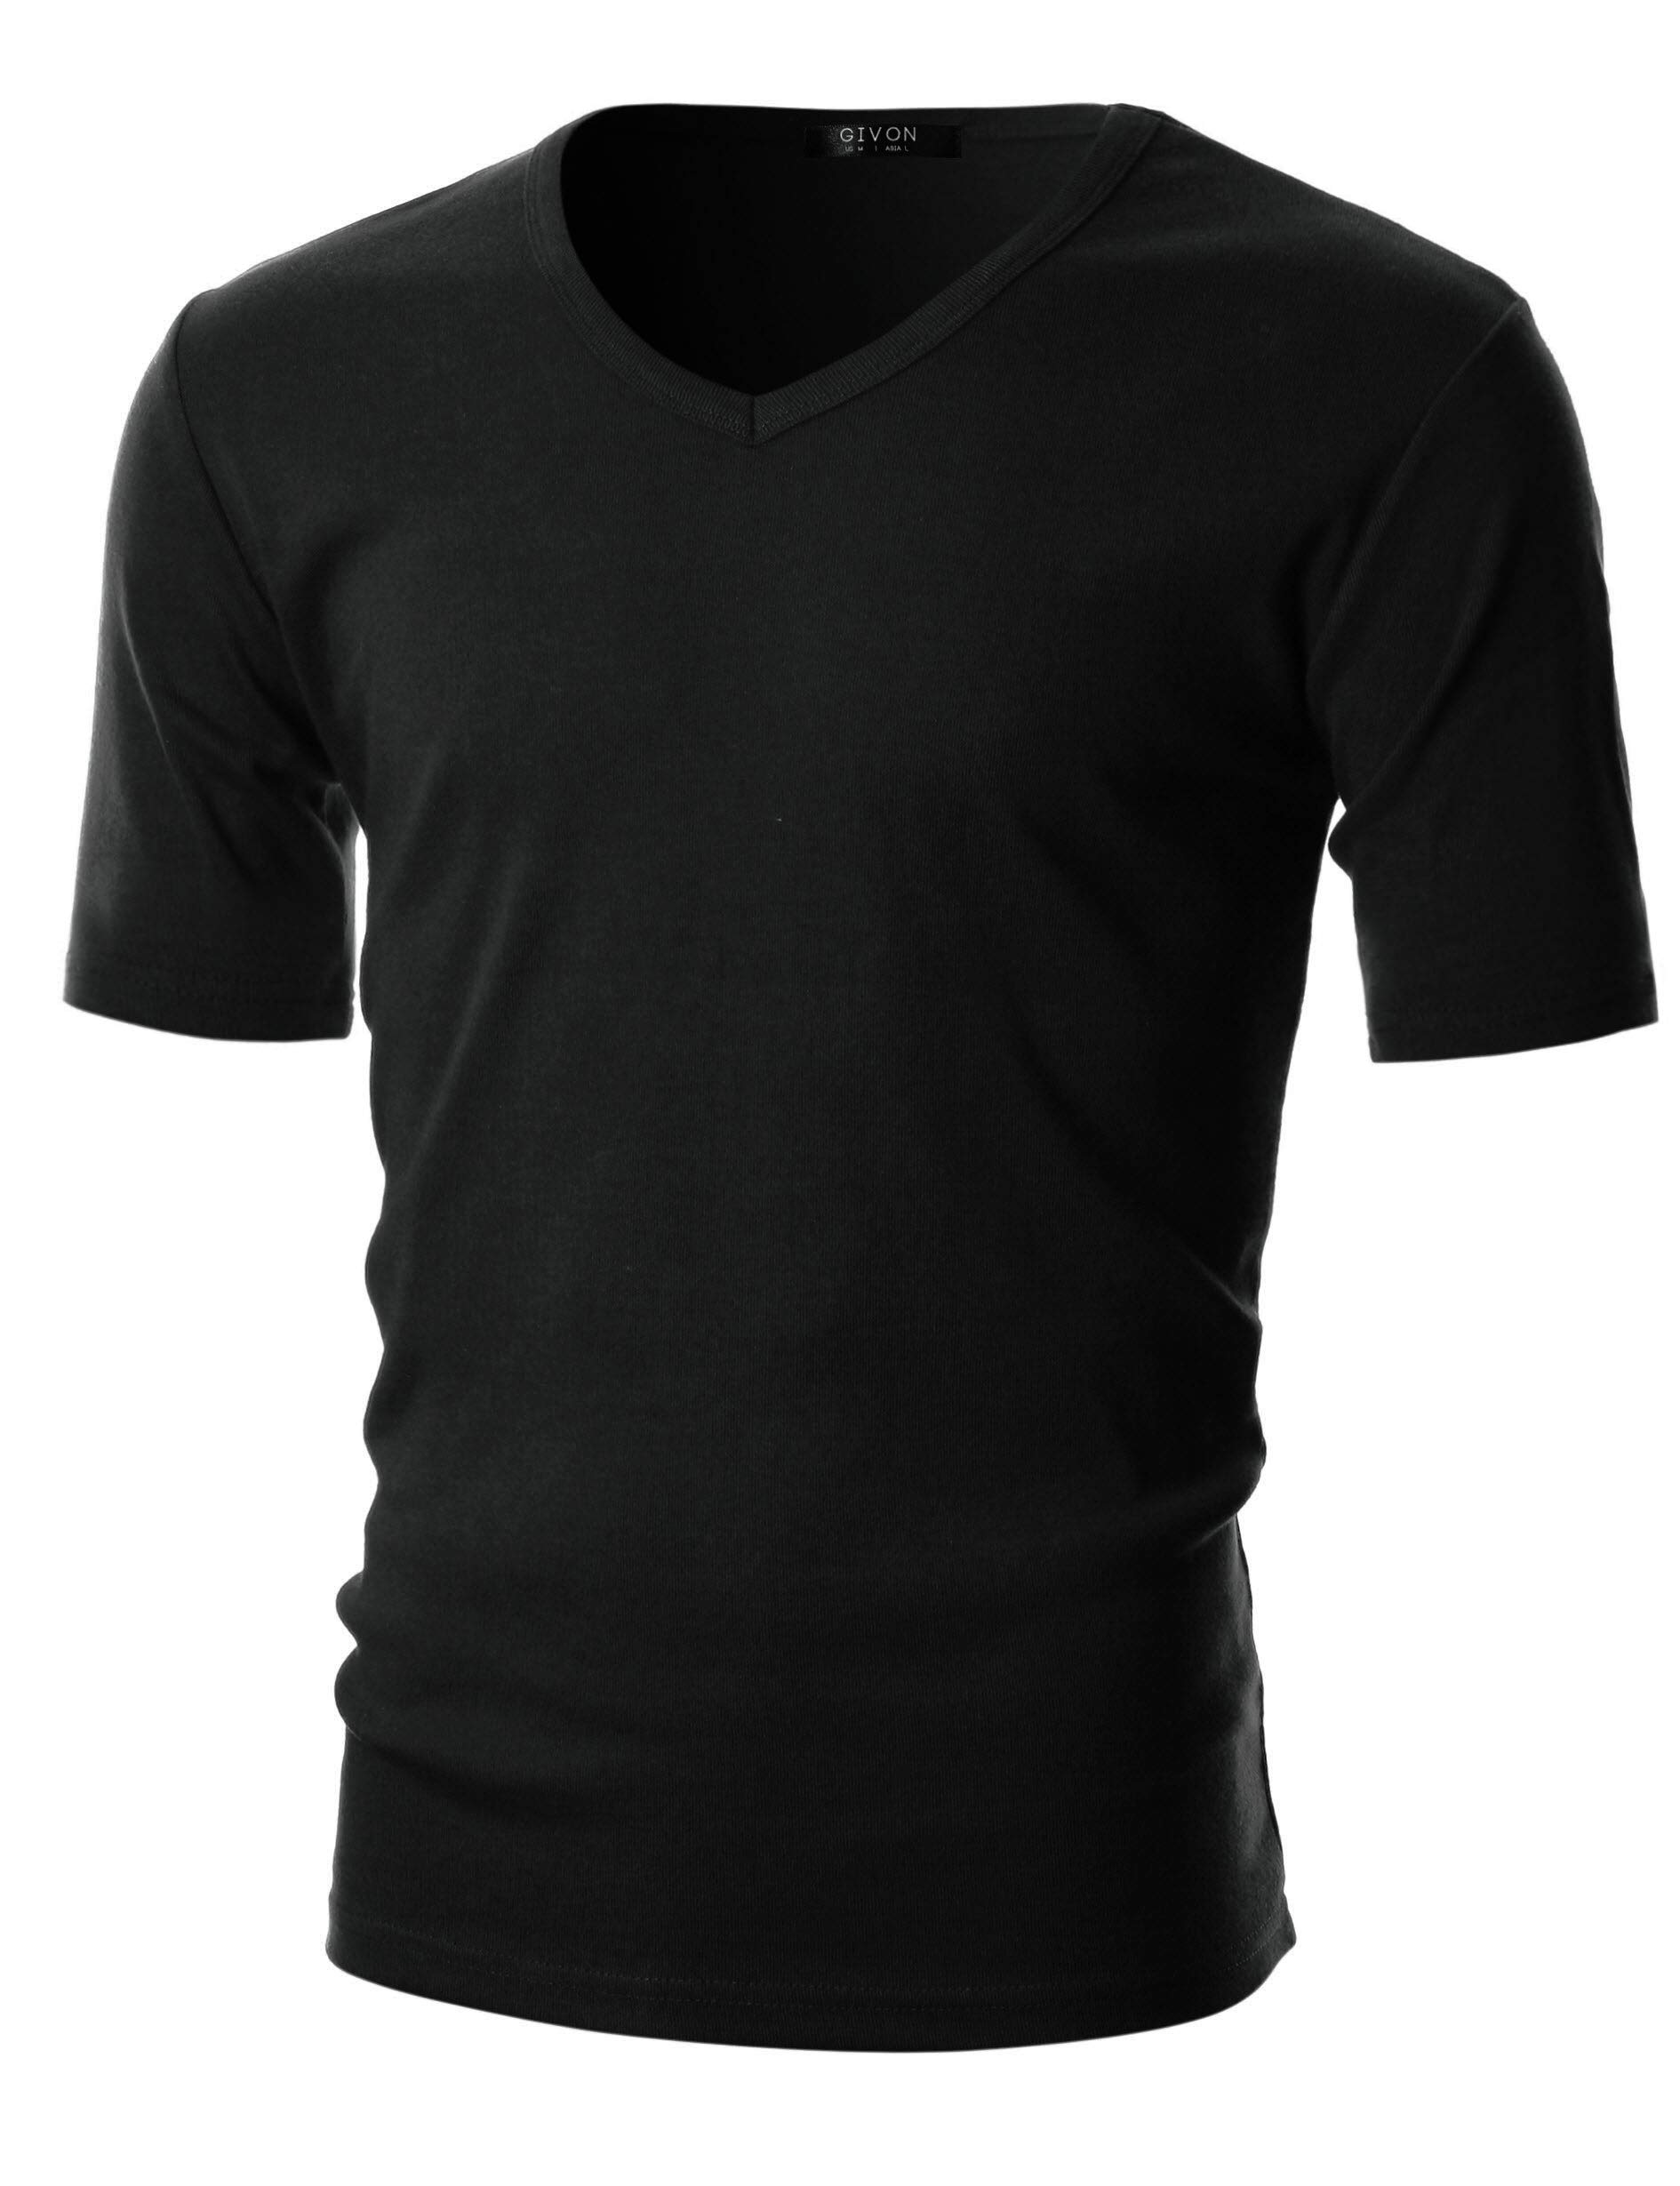 GIVON Mens Slim Fit ComfortSoft Cotton Short Sleeve Lightweight V Neck T-Shirt/DCP063-BLACK-XL by GIVON